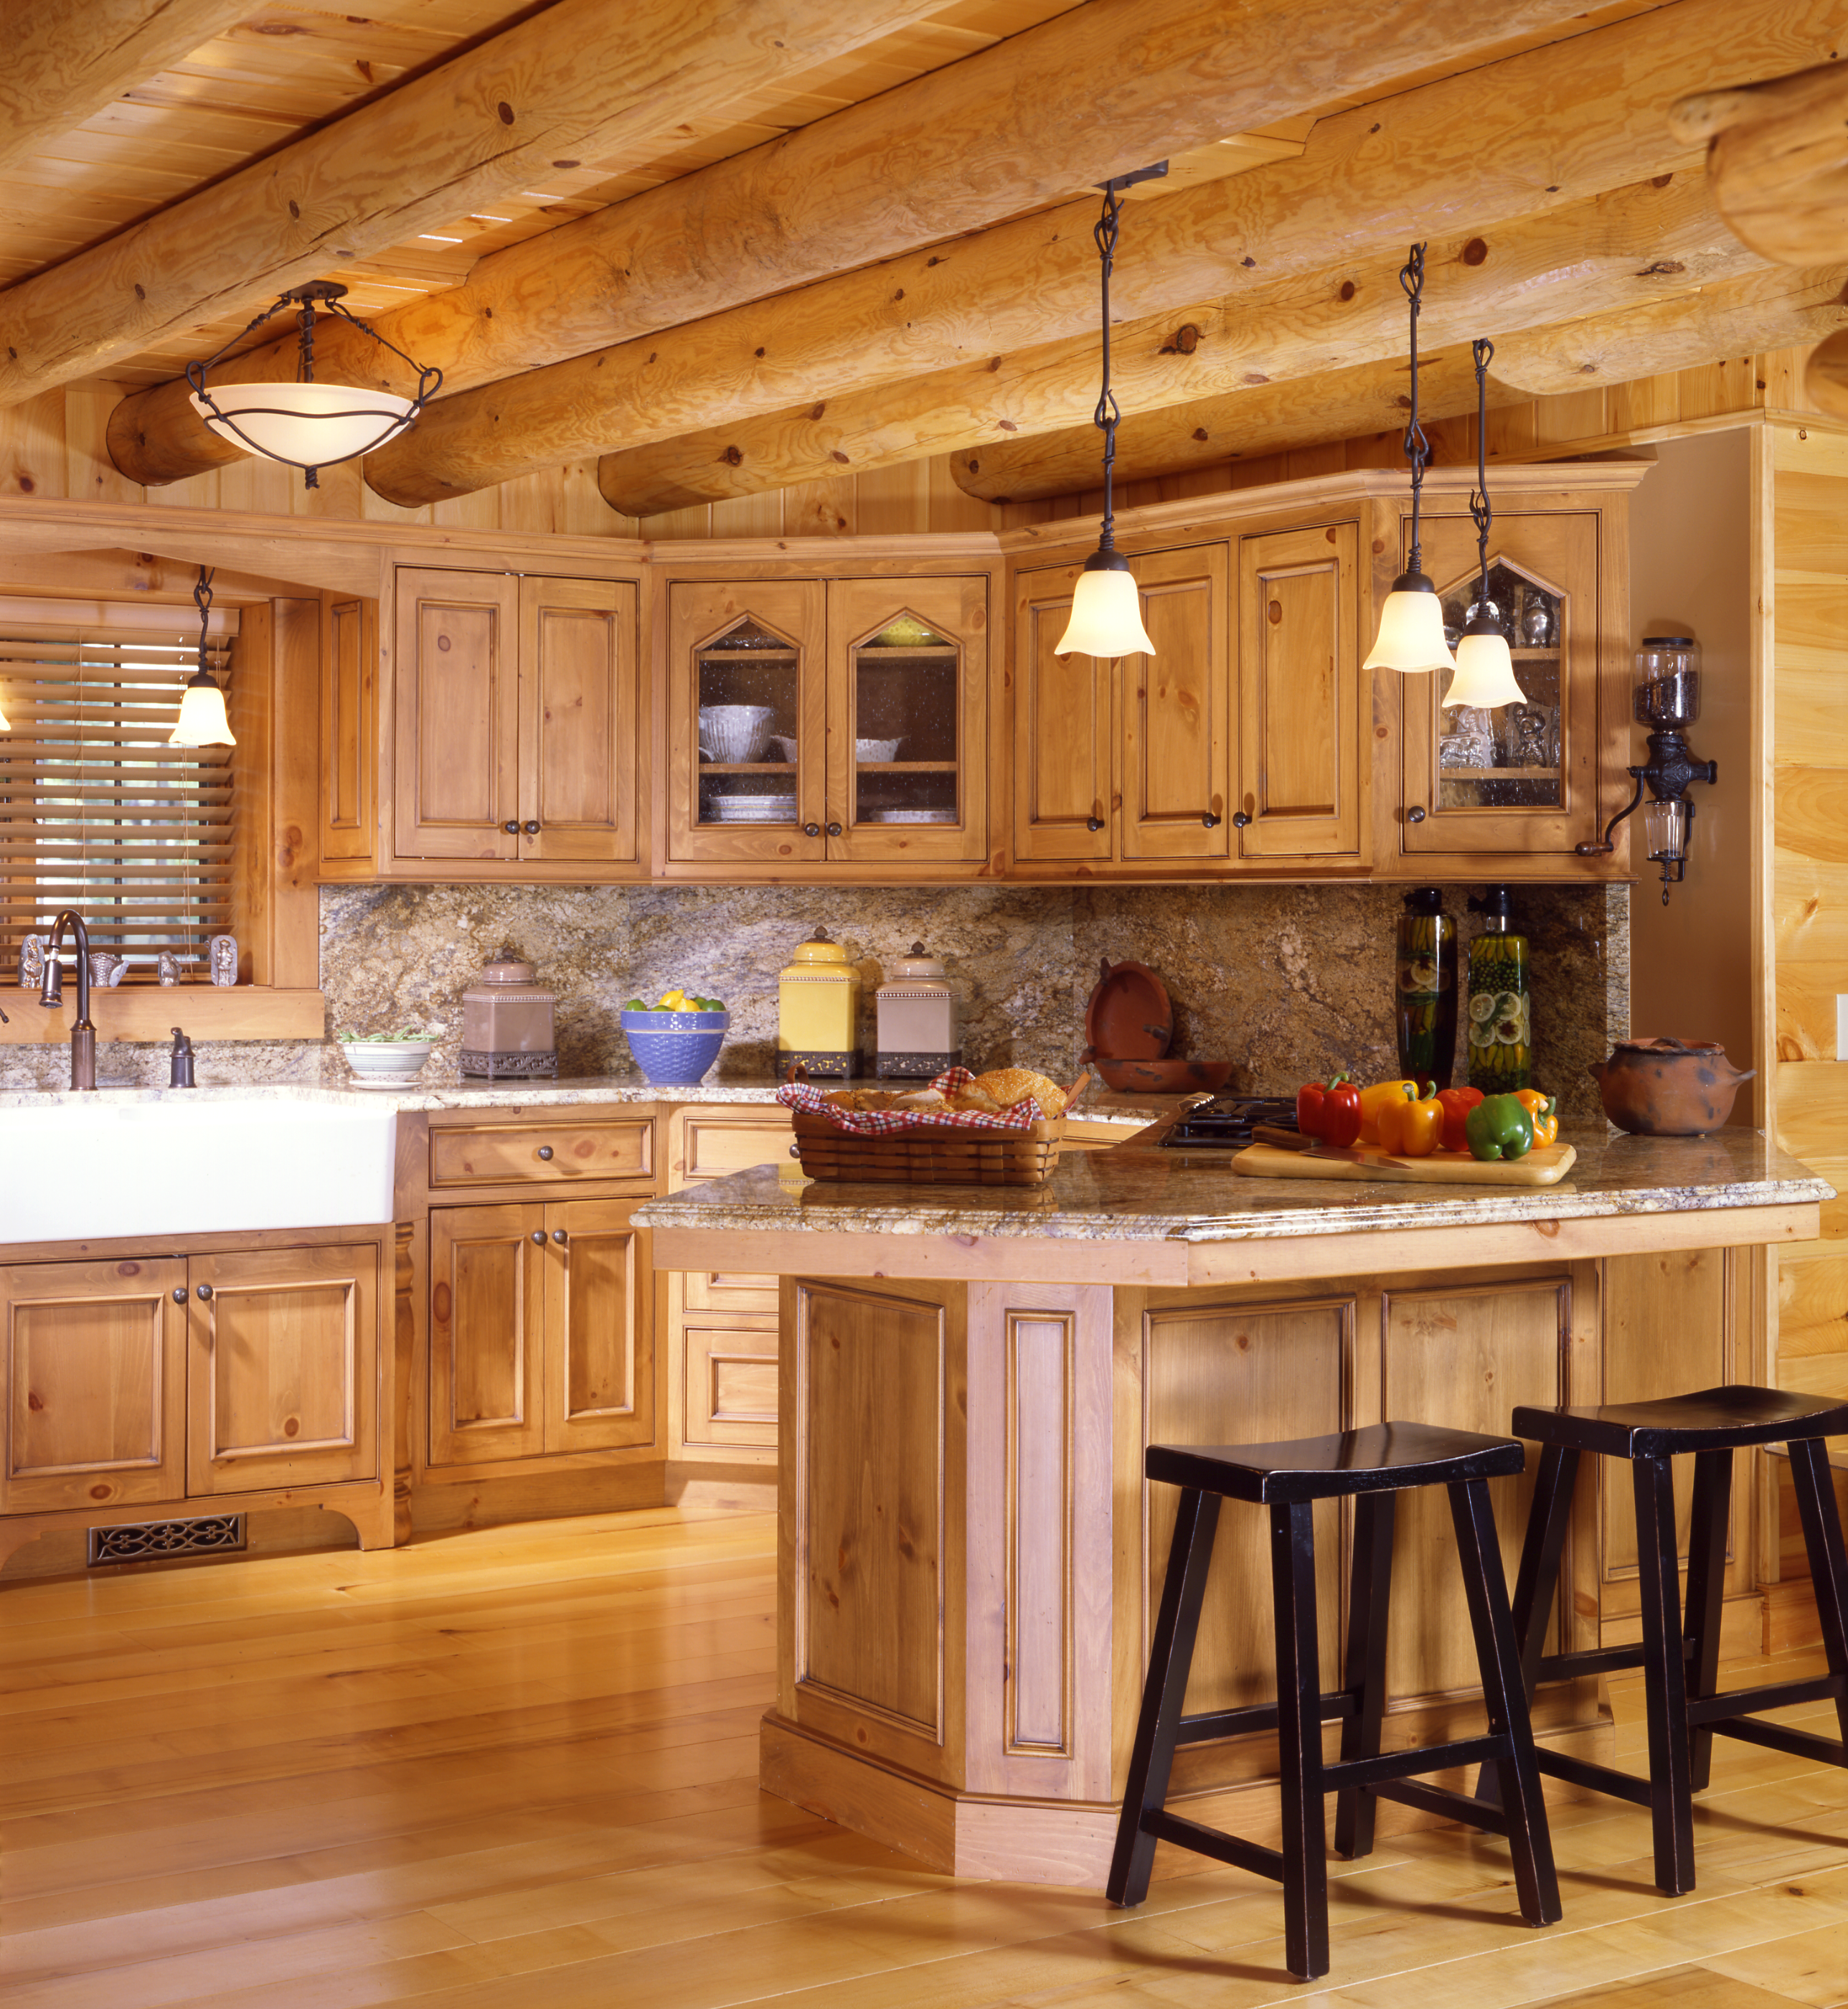 Cabin kitchens real log style for Cabin kitchen backsplash ideas